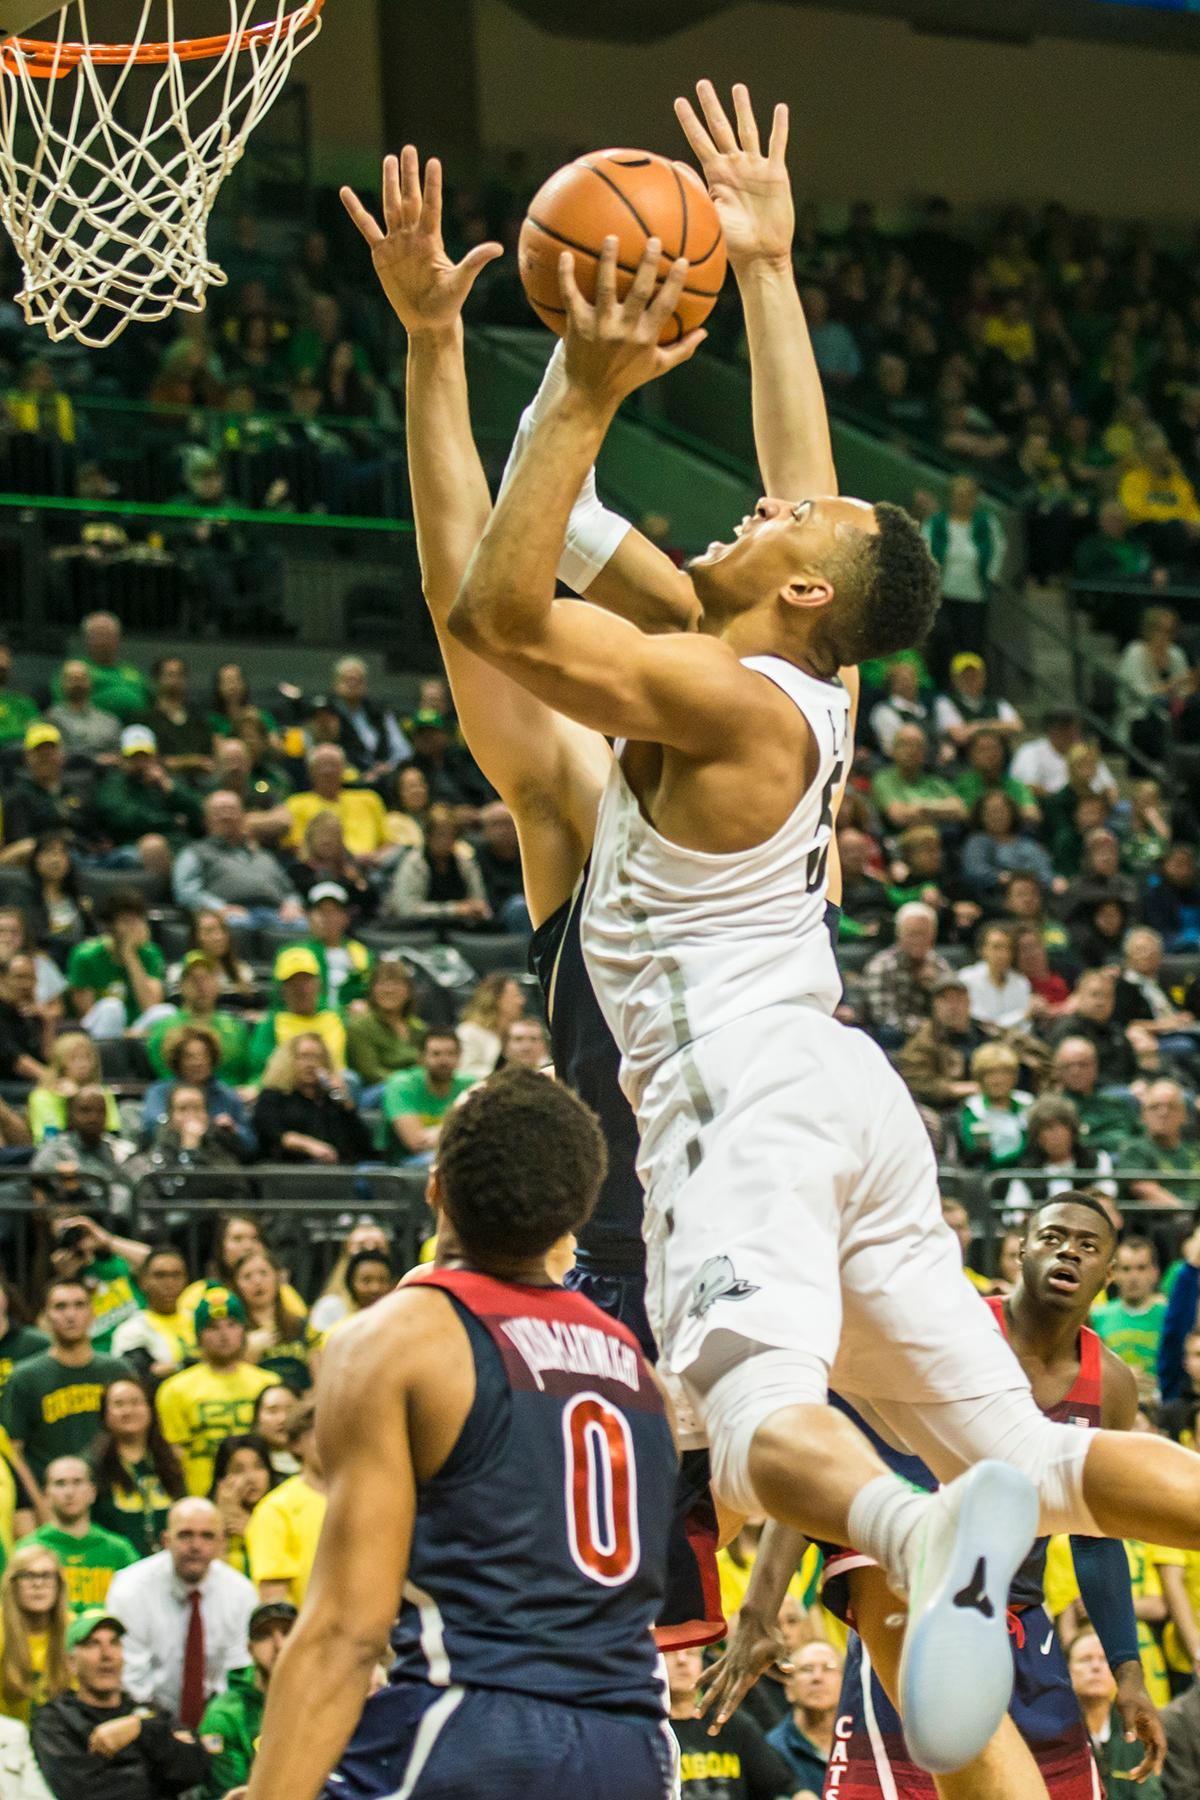 Oregon's Elijah Brown goes up for a layup against Arizona defenders in their matchup at Matthew Knight Arena Saturday. The Ducks upset the fourteenth ranked Wildcats 98-93 in a stunning overtime win in front of a packed house of over 12,000 fans for their final home game to improve to a 19-10 (9-7 PAC-12) record on the season. Oregon will finish out regular season play on the road in Washington next week against Washington State on Thursday, then Washington on the following Saturday. (Photo by Colin Houck)